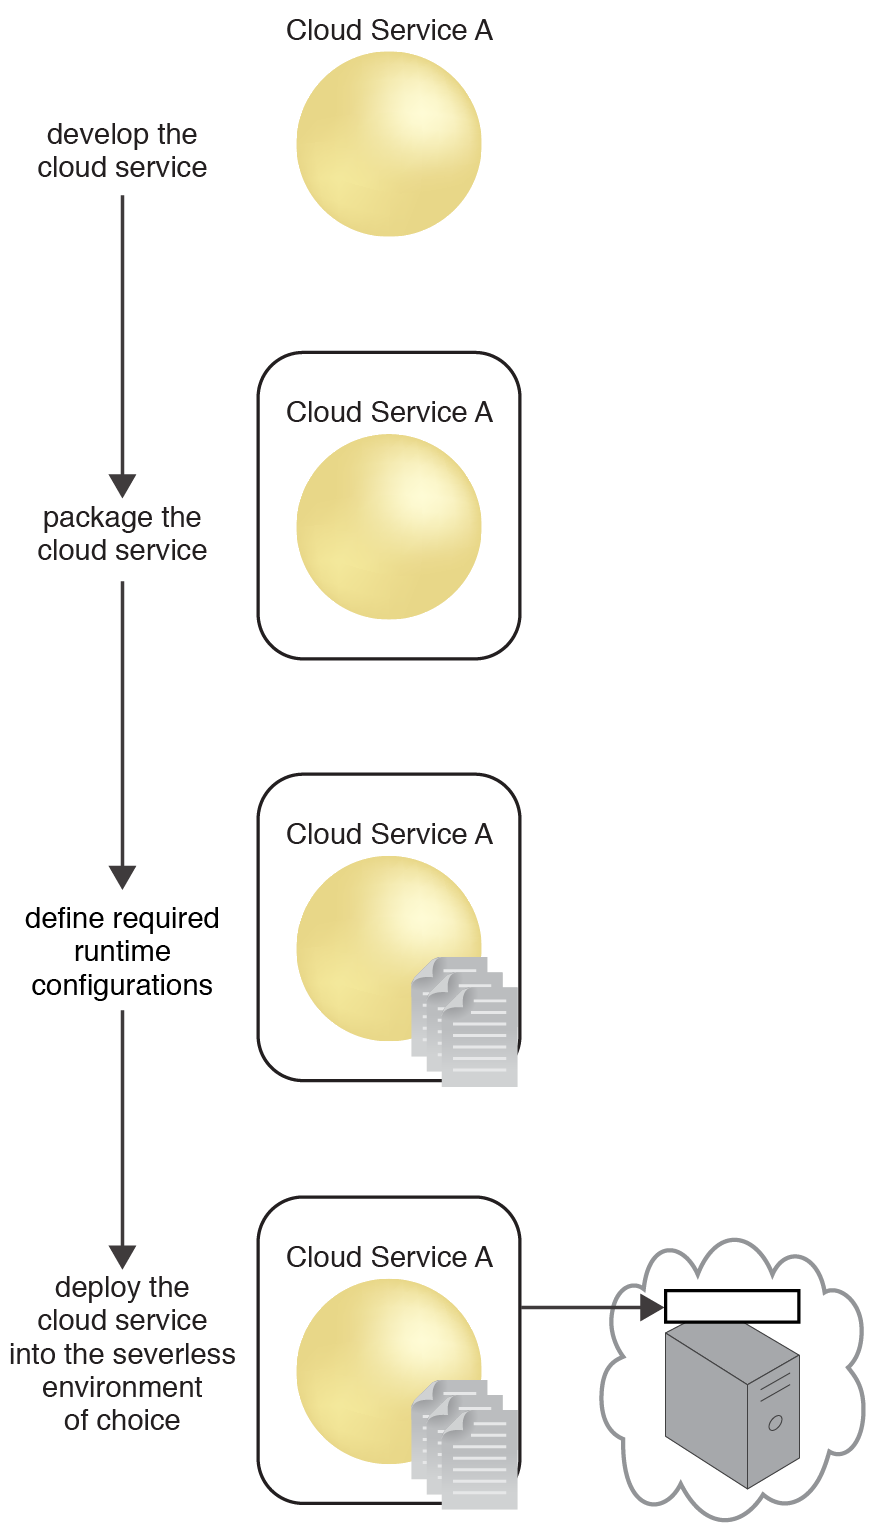 Serverless Deployment: The sequence in which a cloud service transitions from development to deployment in a serverless environment